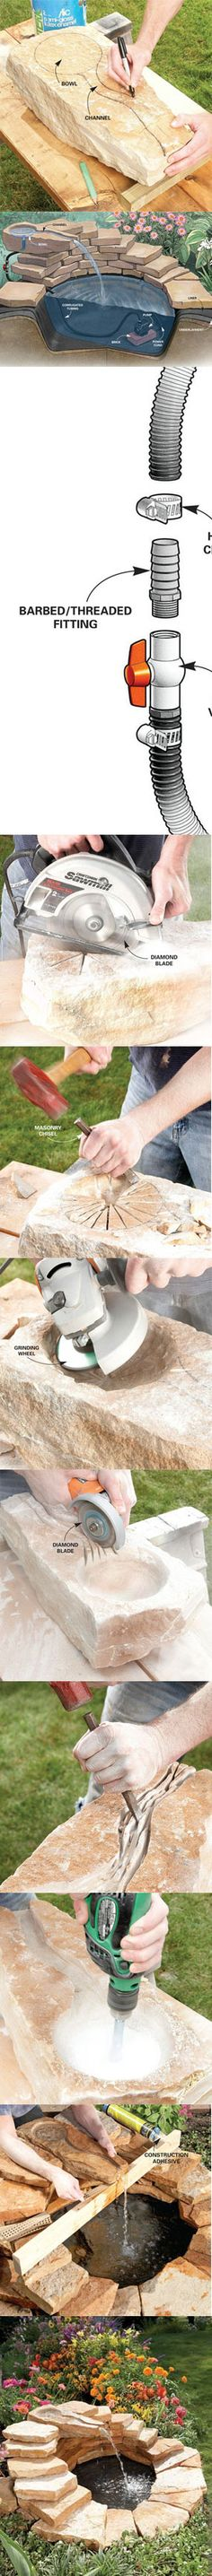 Aprenda a construir una fuente de hormigón en www.familyhandyma ...------------------------------------Learn how to build a concrete fountain at http://www.familyhandyman.com/DIY-Projects/Outdoor-Projects/Water-Features/Fountains/fountain-how-to-build-a-concrete-fountain/View-All